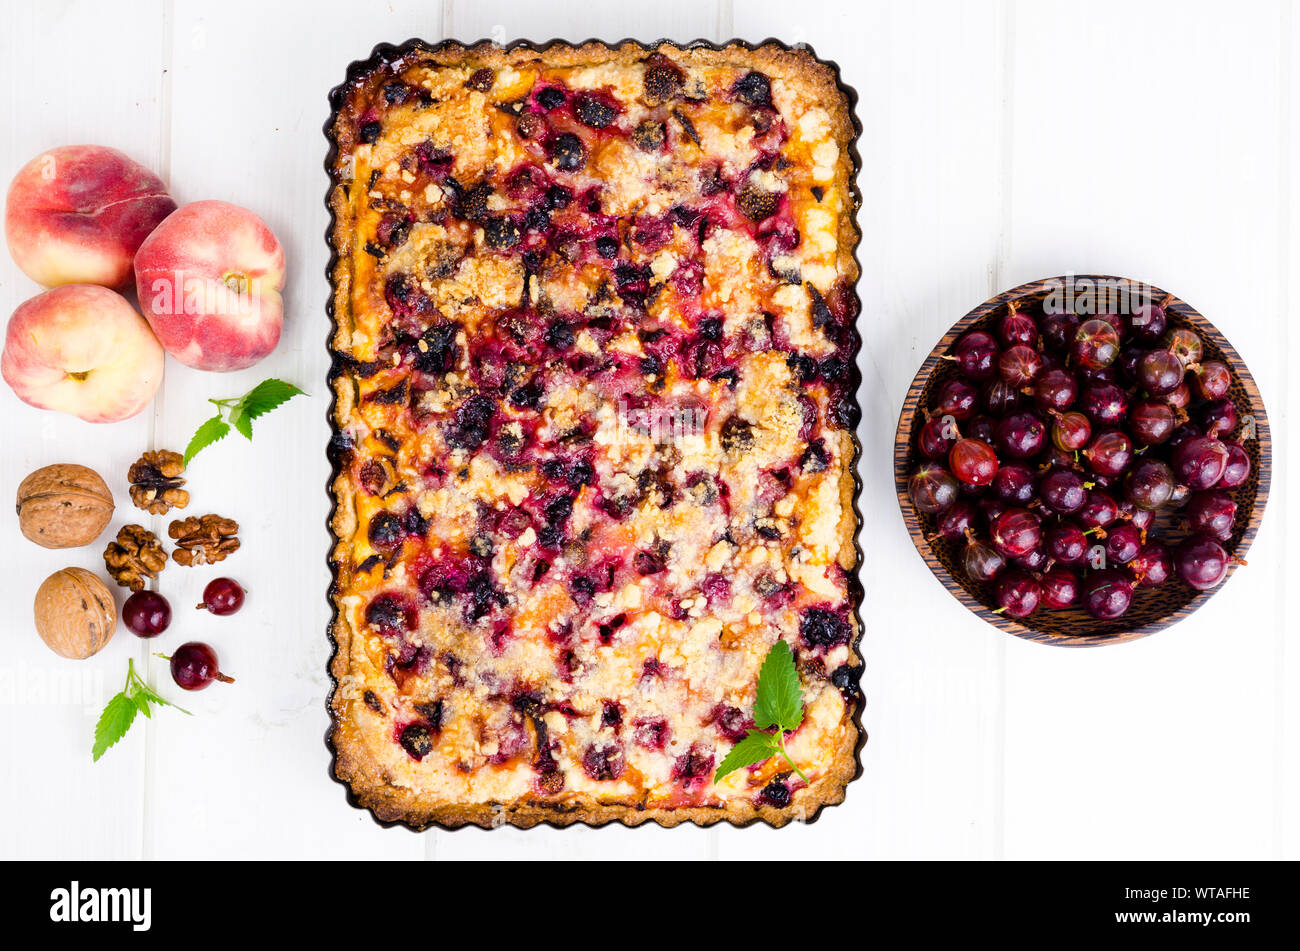 Homemade tart with berries, fruits and walnuts in shape on light background. Studio Photo Stock Photo